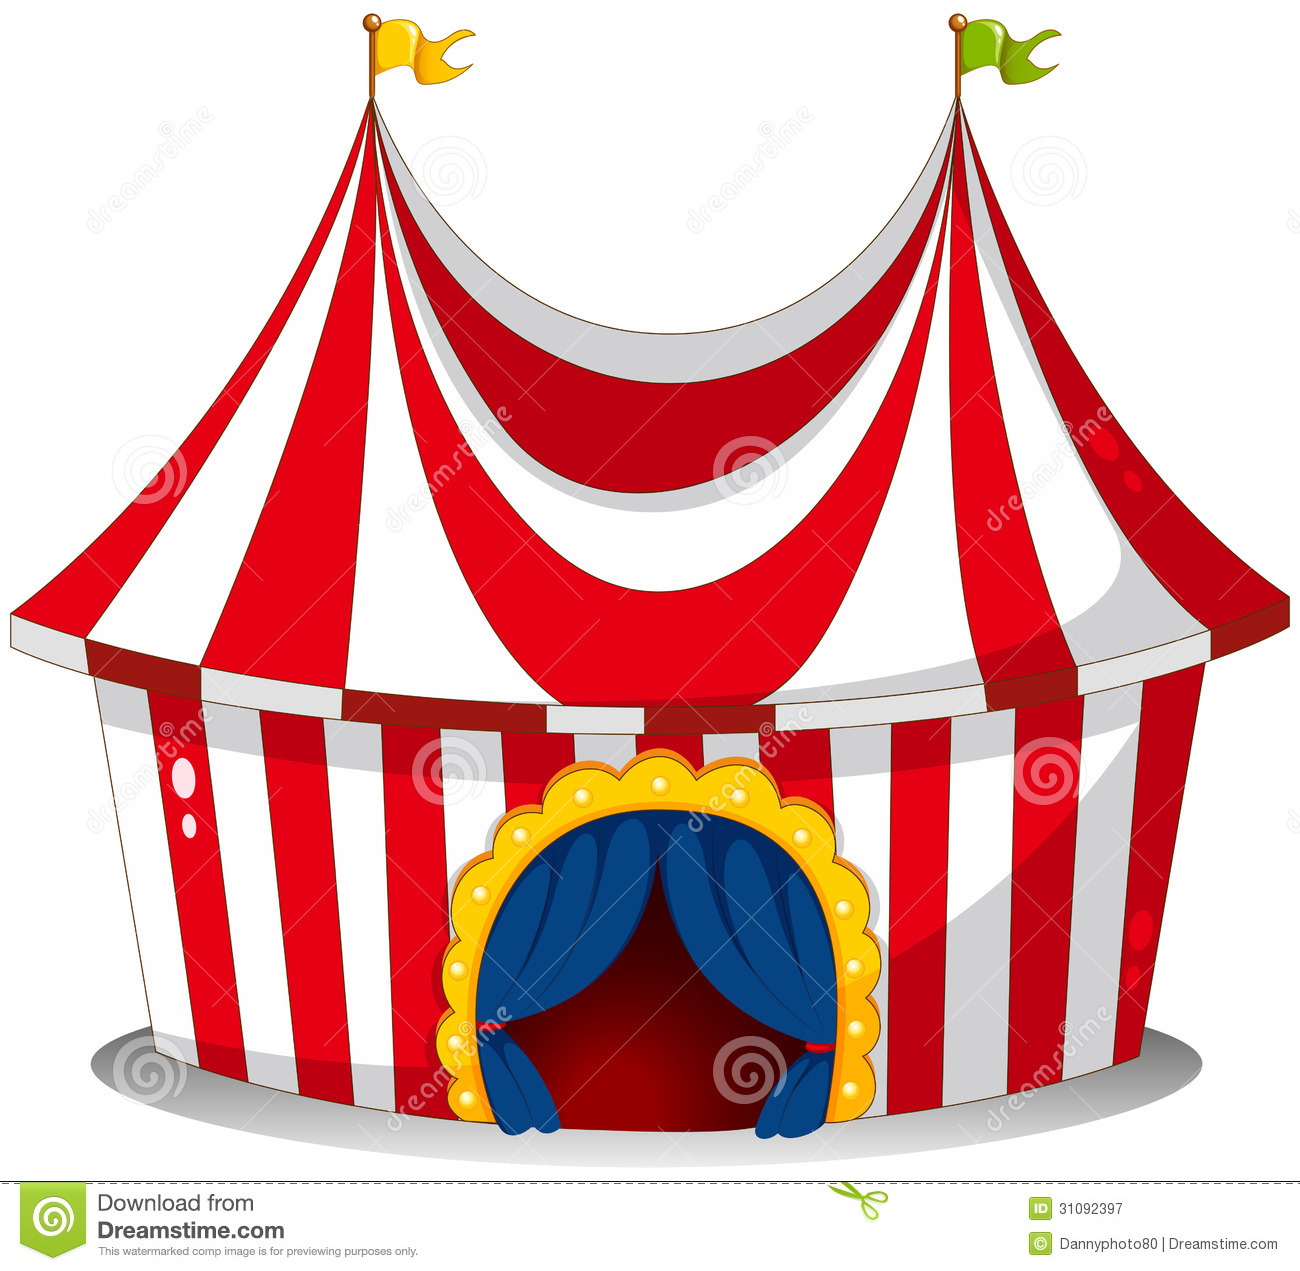 Collection of Circus tent clipart.